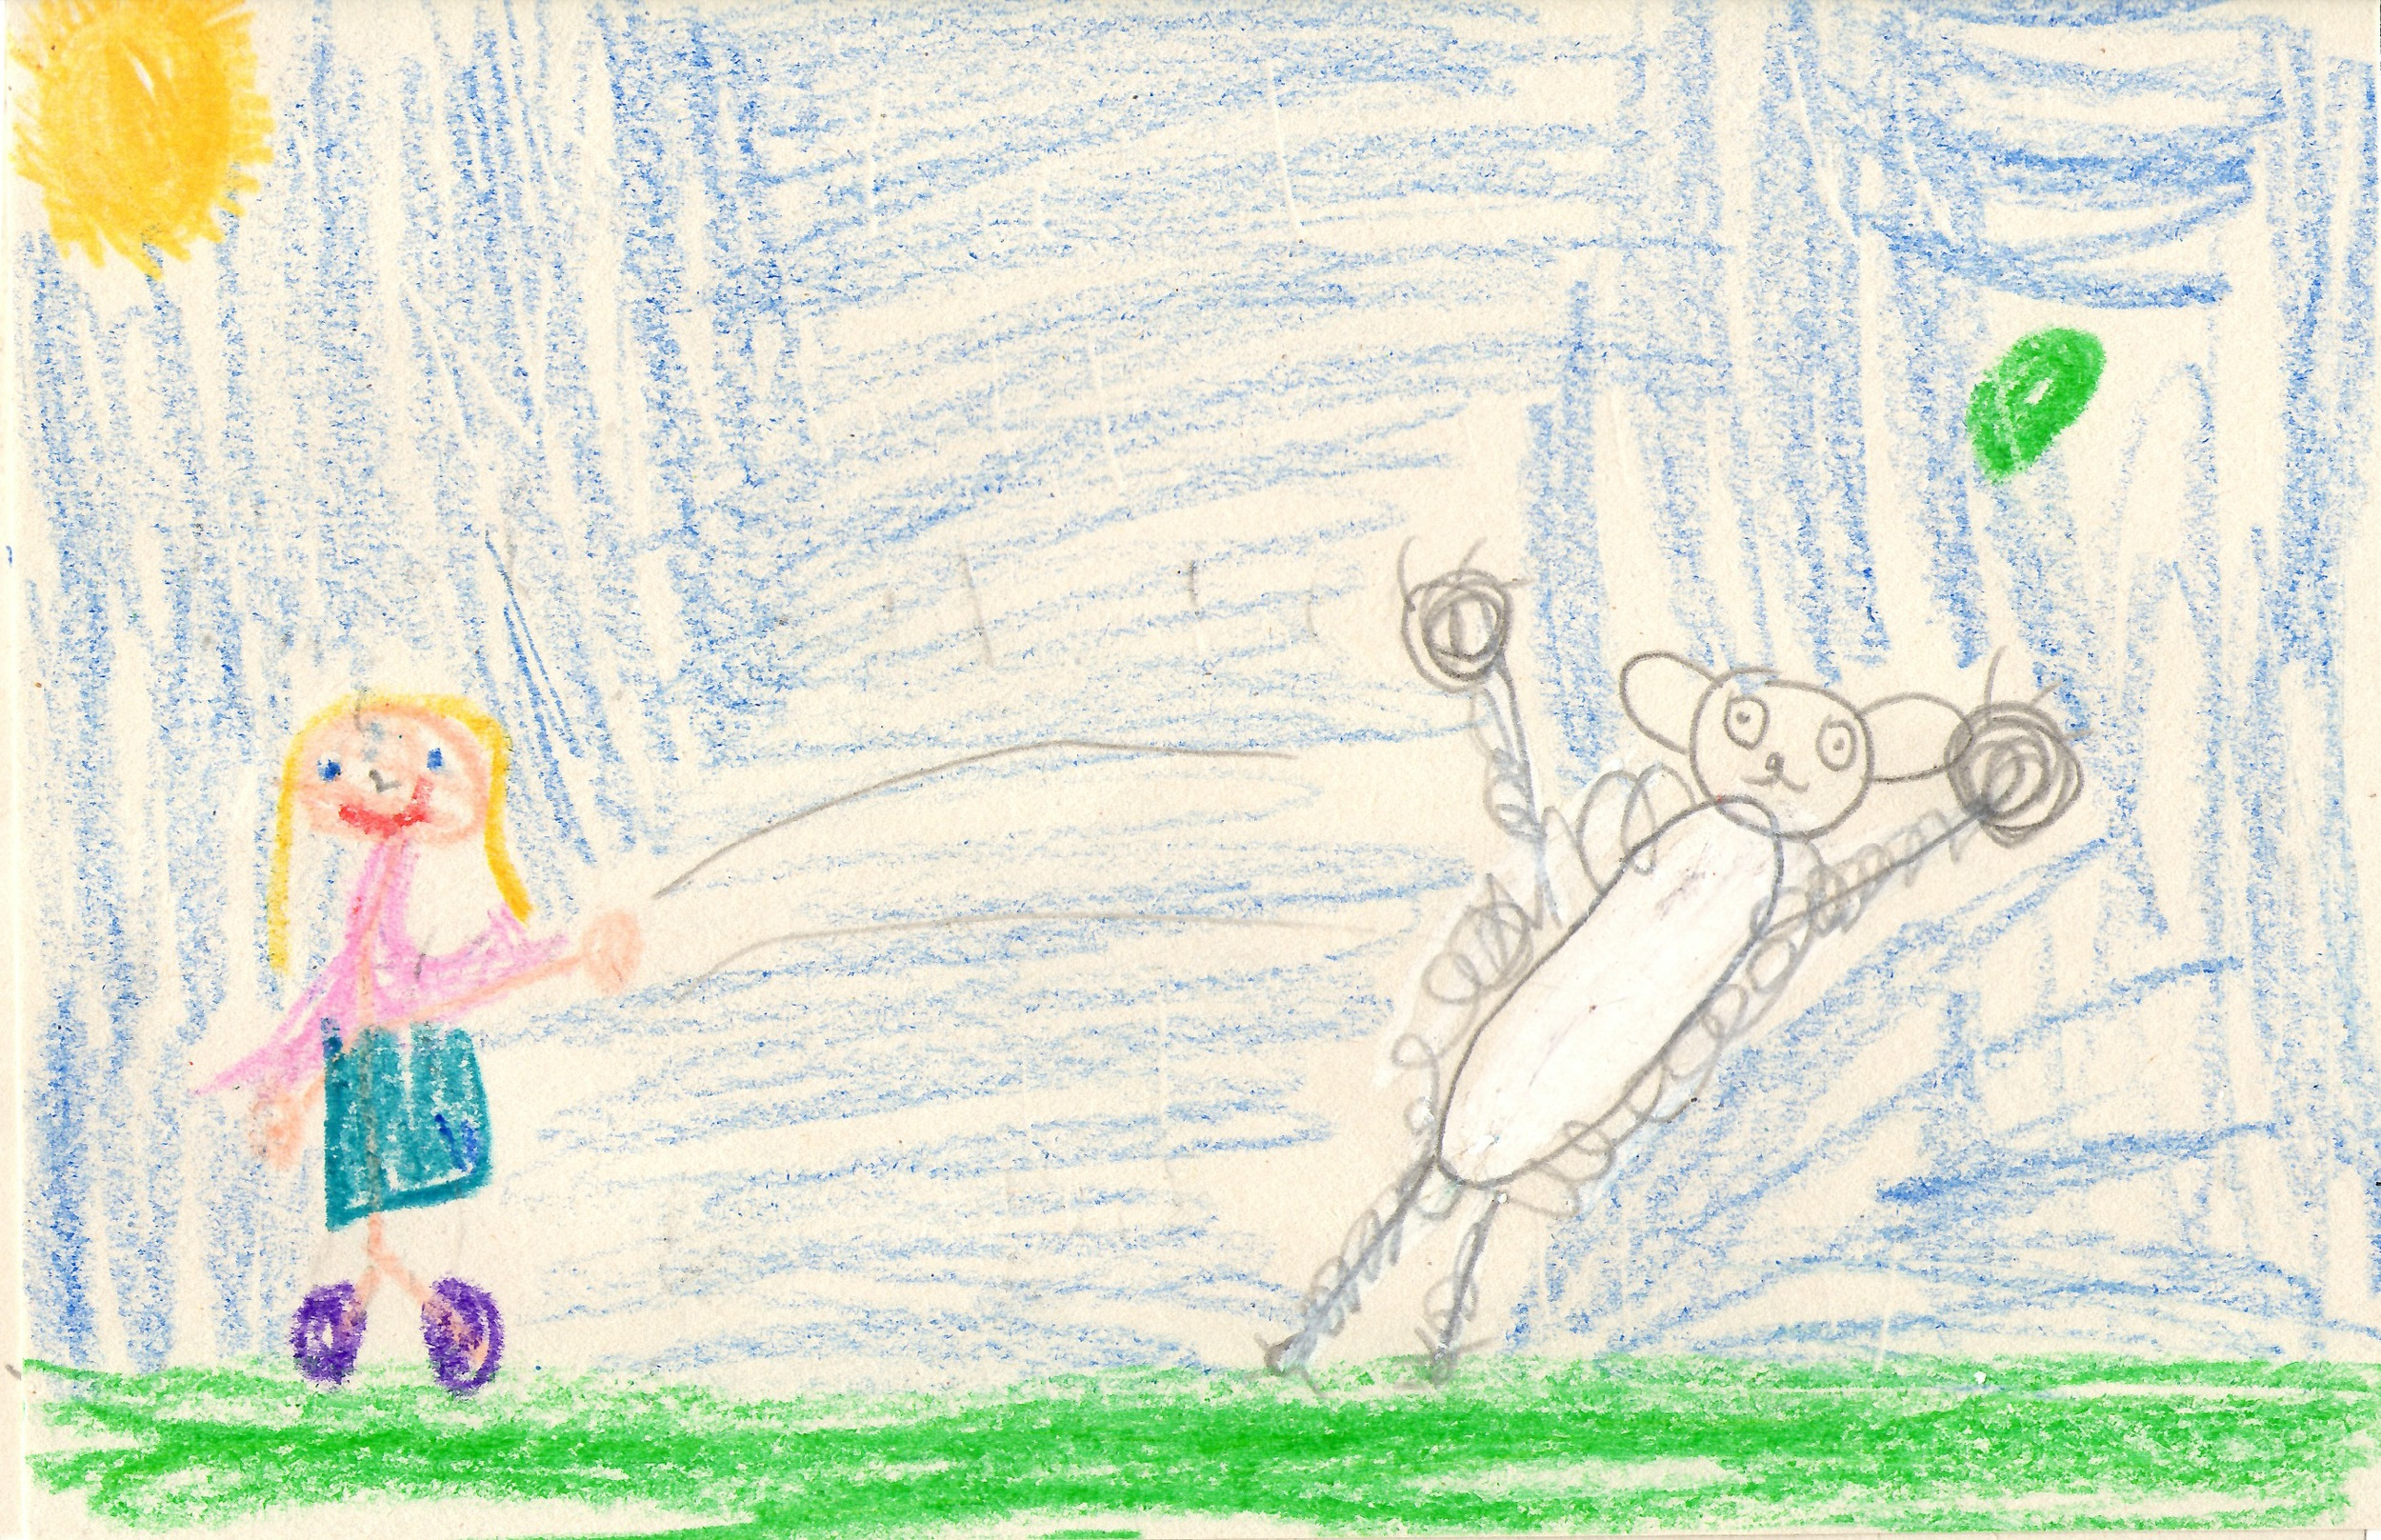 Weymouth Elementary_Norbert Fan Drawing 18_12162013.jpg